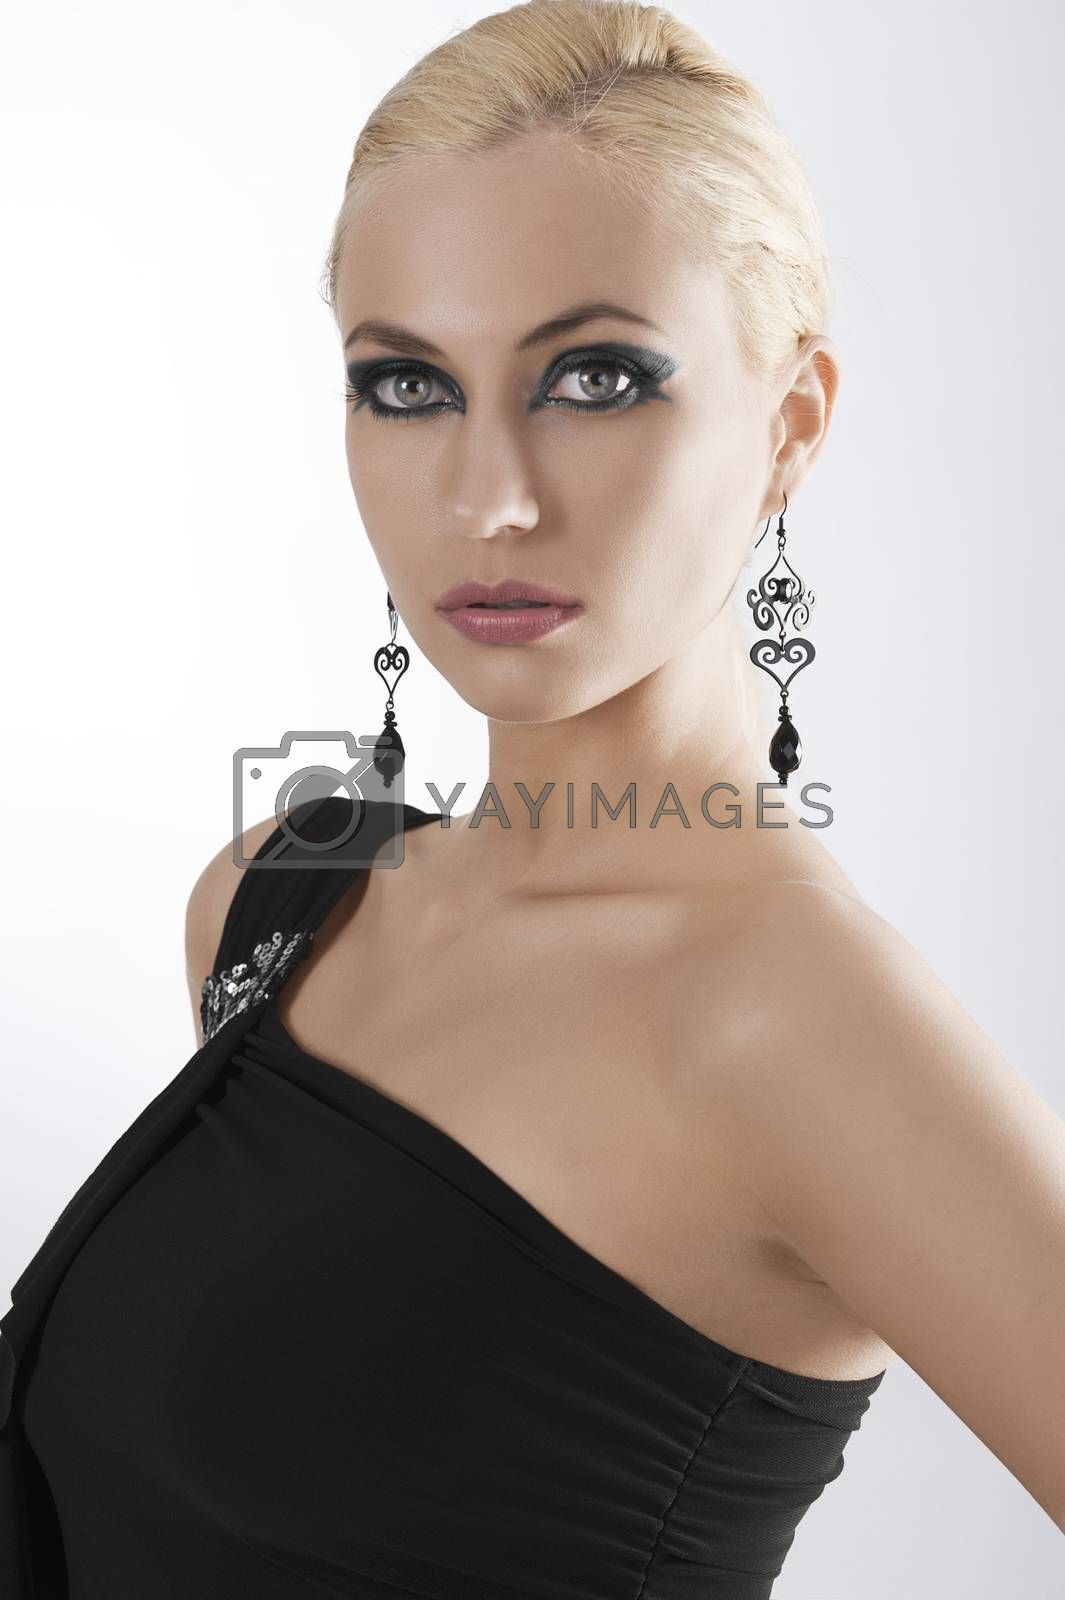 Royalty free image of portrait of blond girl in black dress posing by fotoCD